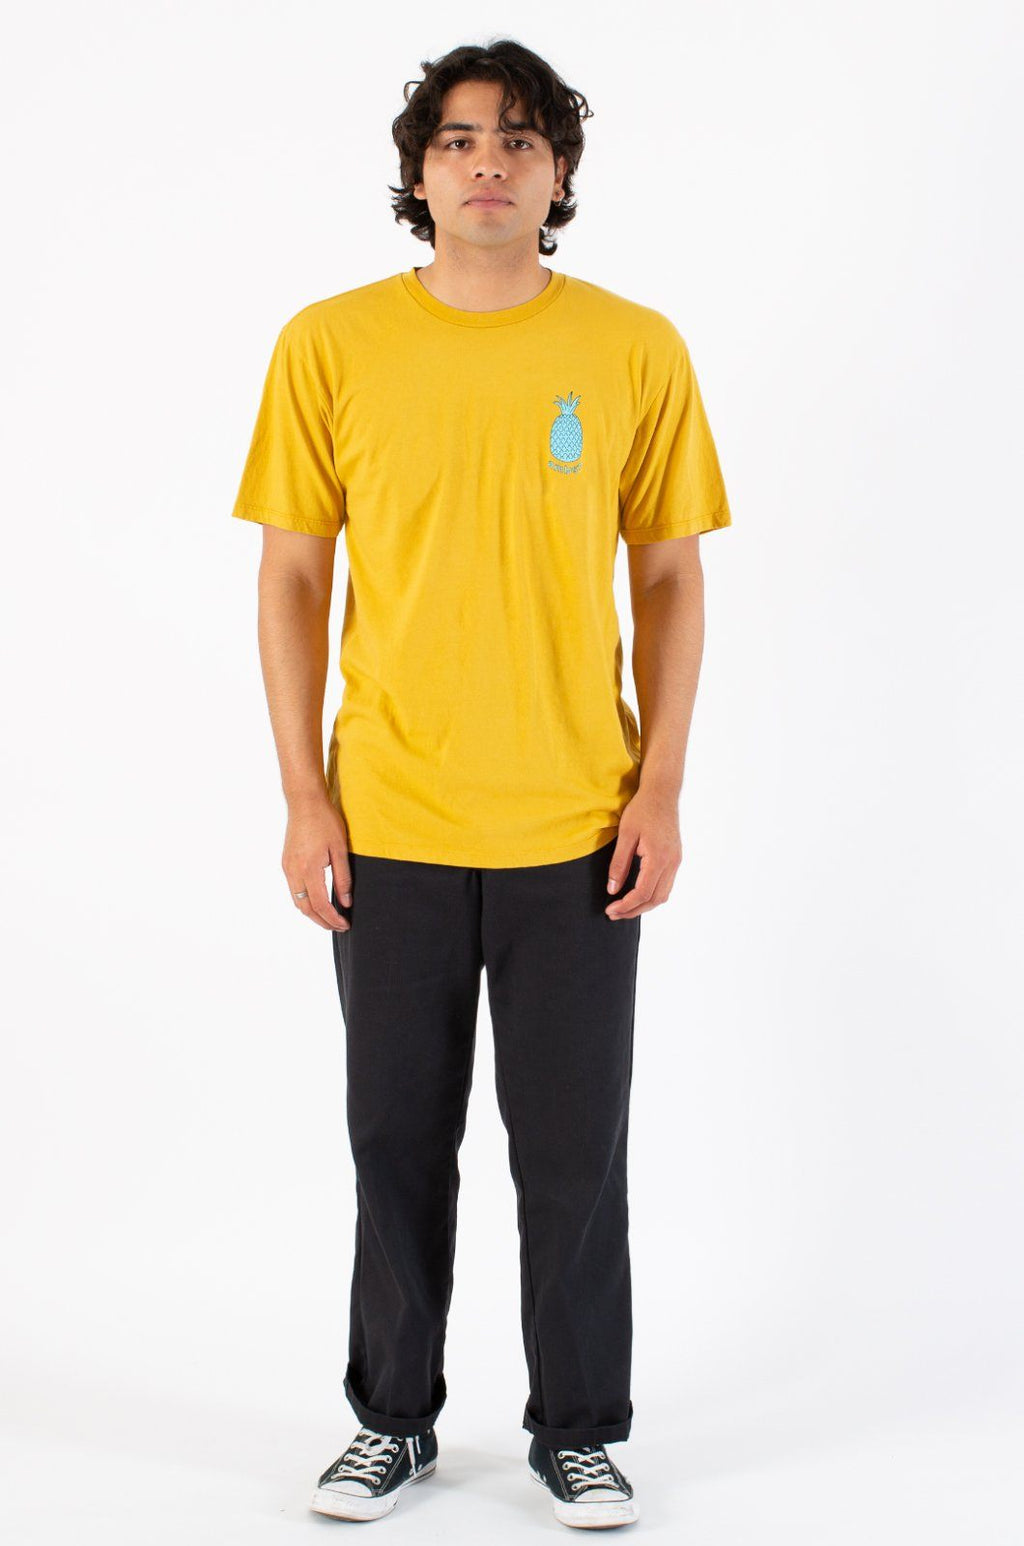 Louie T-Shirts ambsn GOLD XS